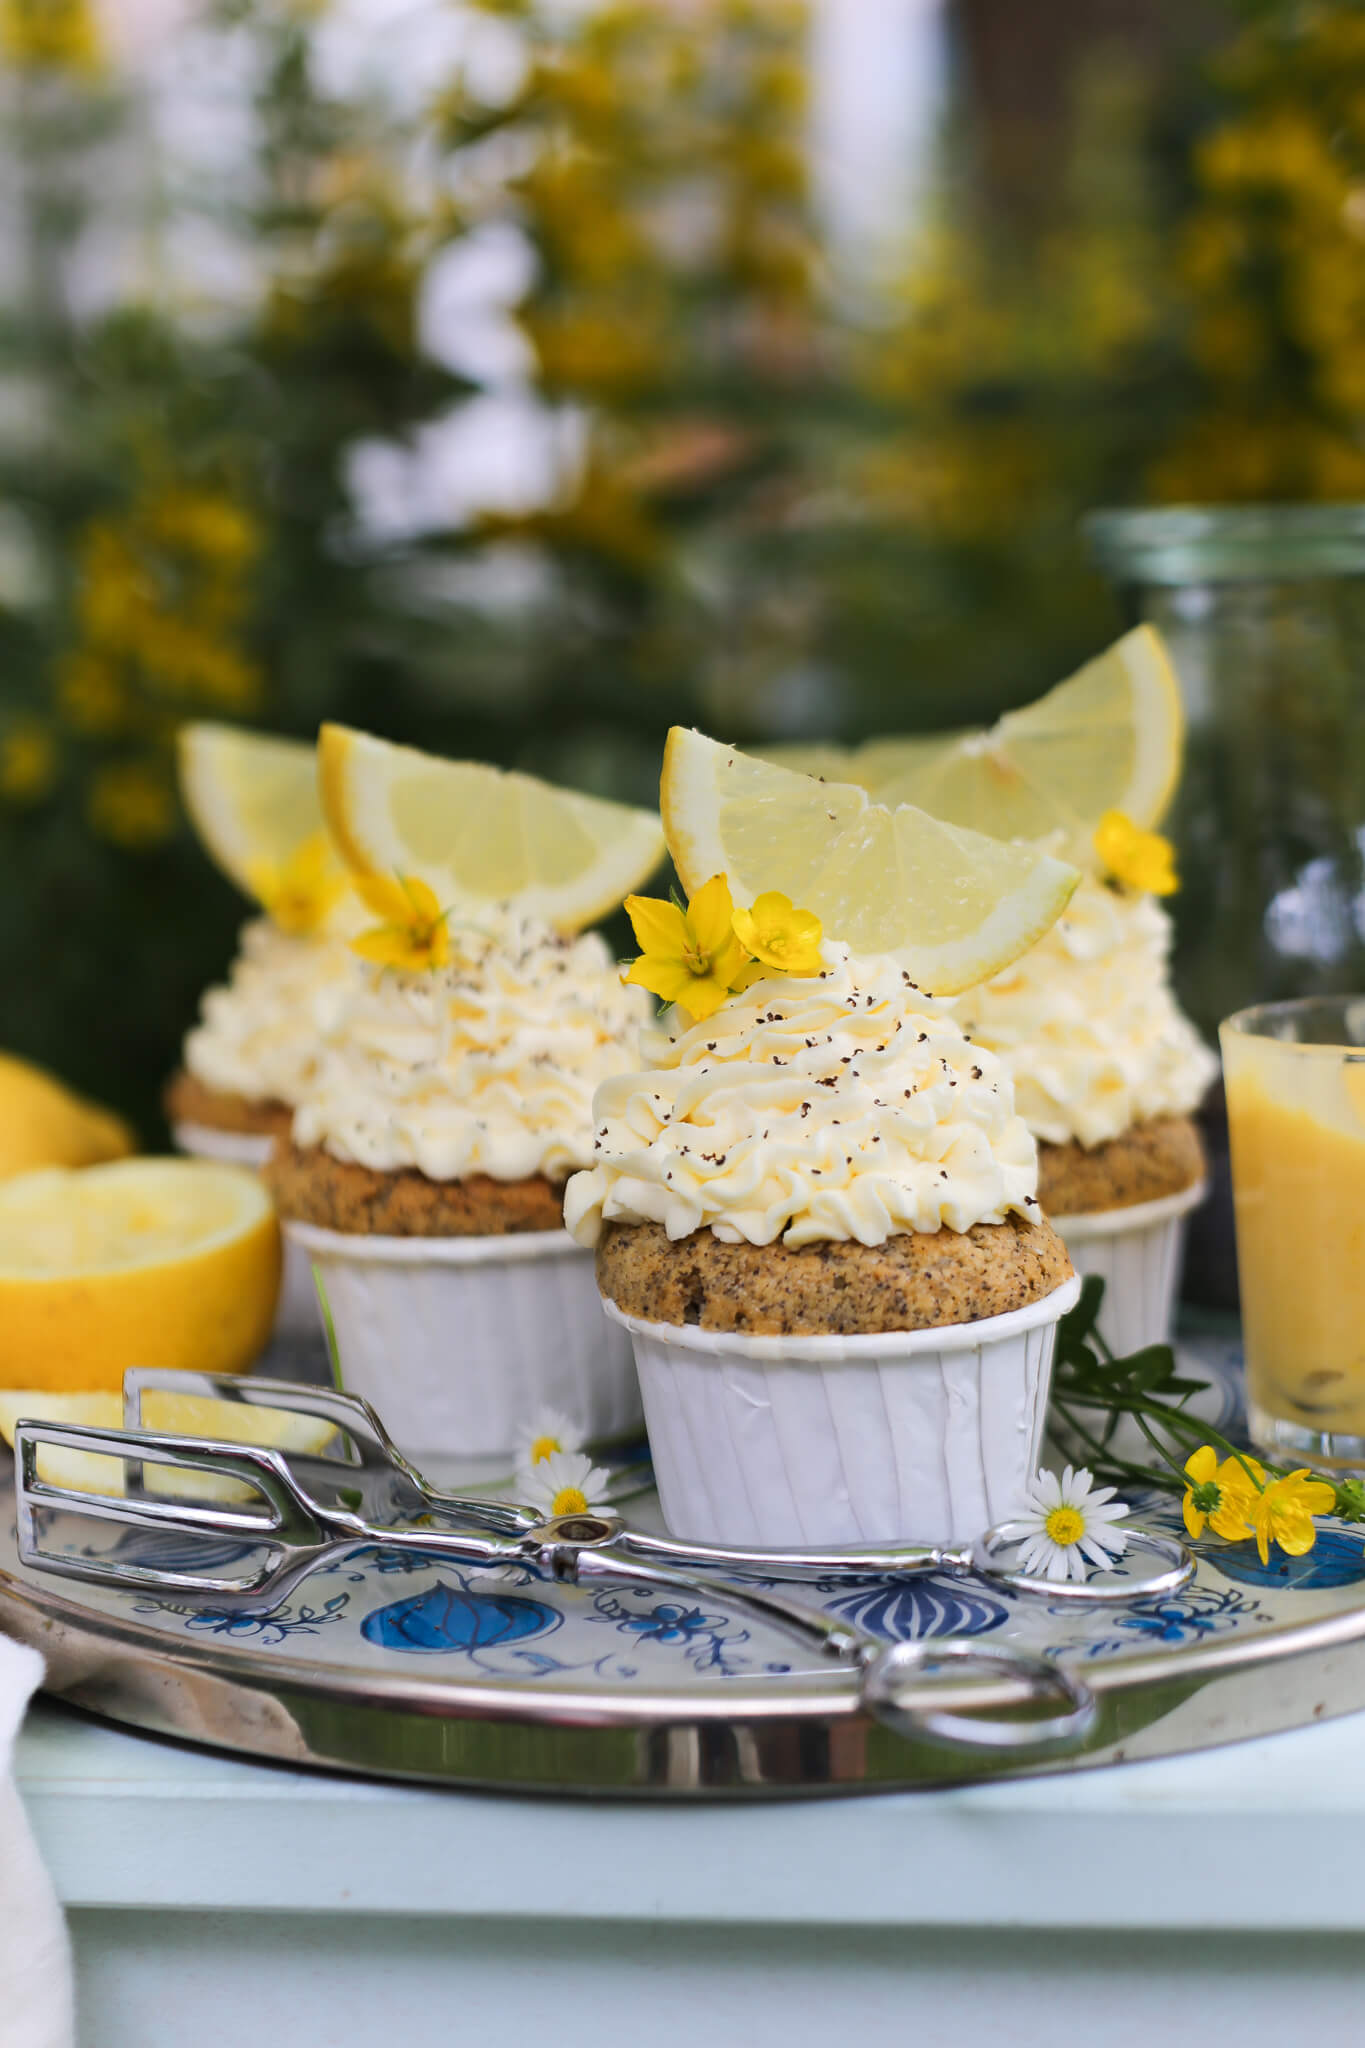 Zitronen-Mohn-Cupcakes mit Lemon Curd